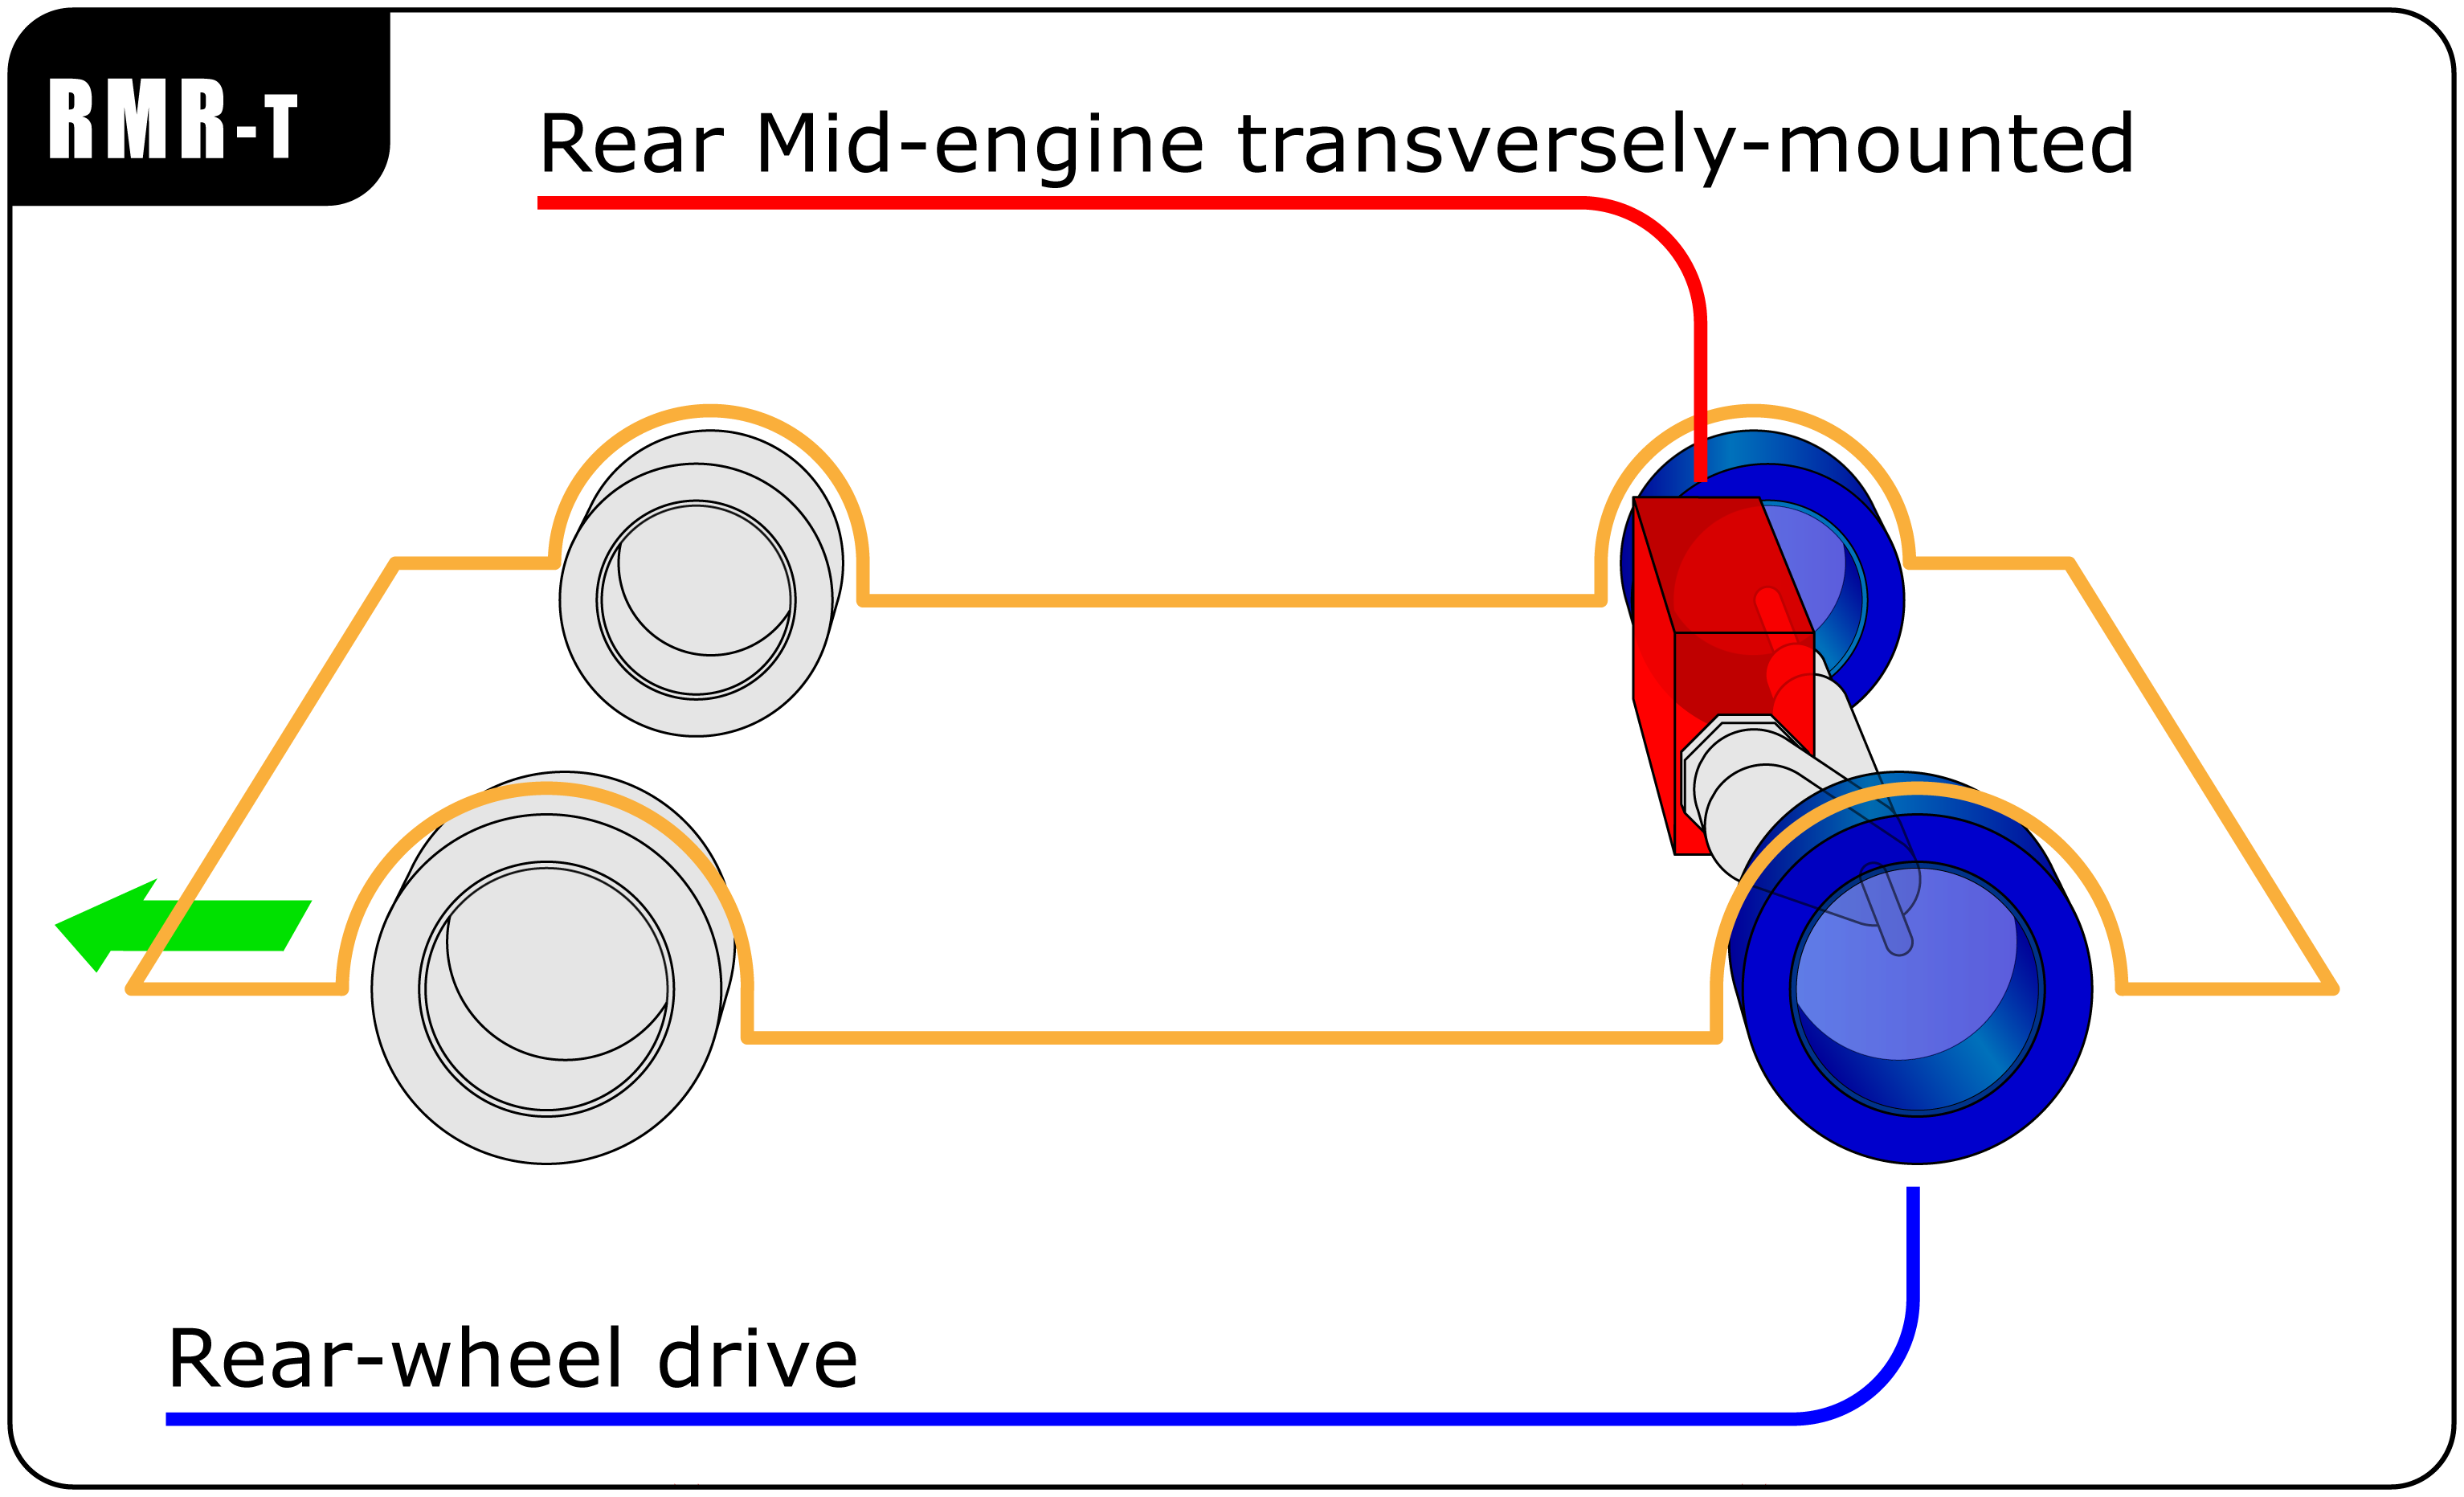 Rear Mid-engine transversely-mounted / Rear-wheel drive